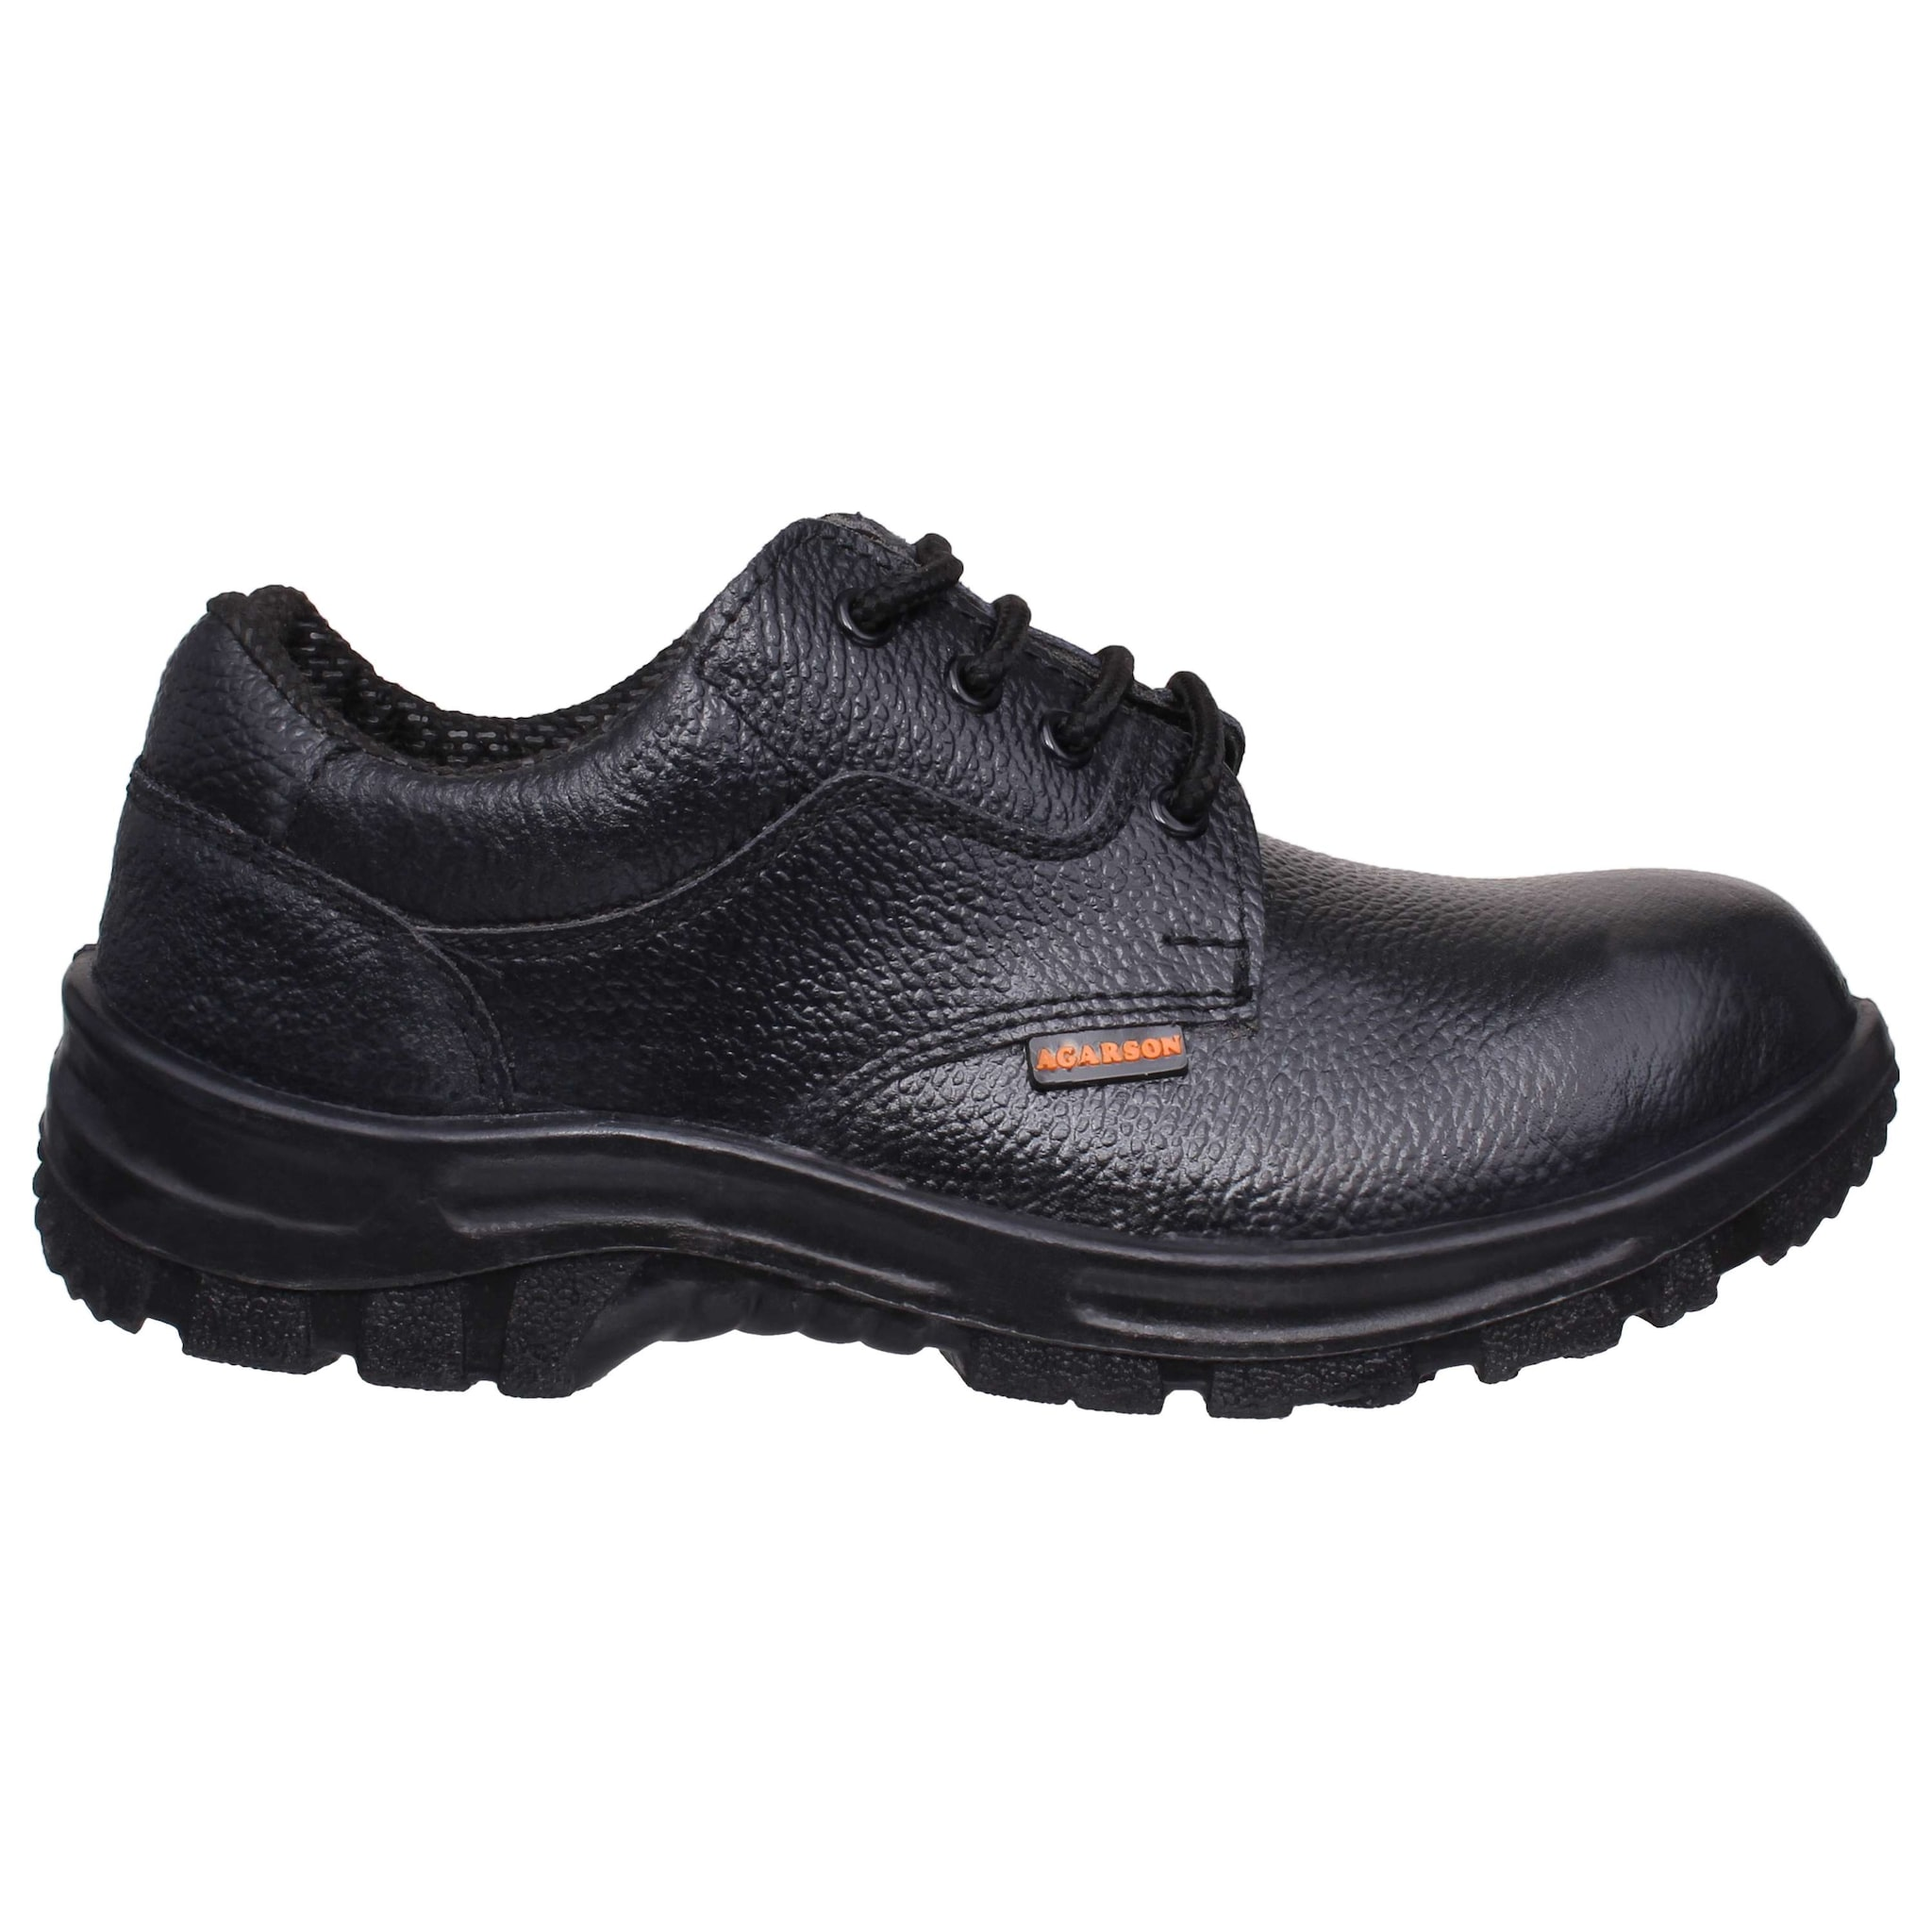 3c8301883533f0 Buy Agarson Men Black Boot - Ertiga-safetyshoes-01 Online at Low Prices in  India - Paytmmall.com